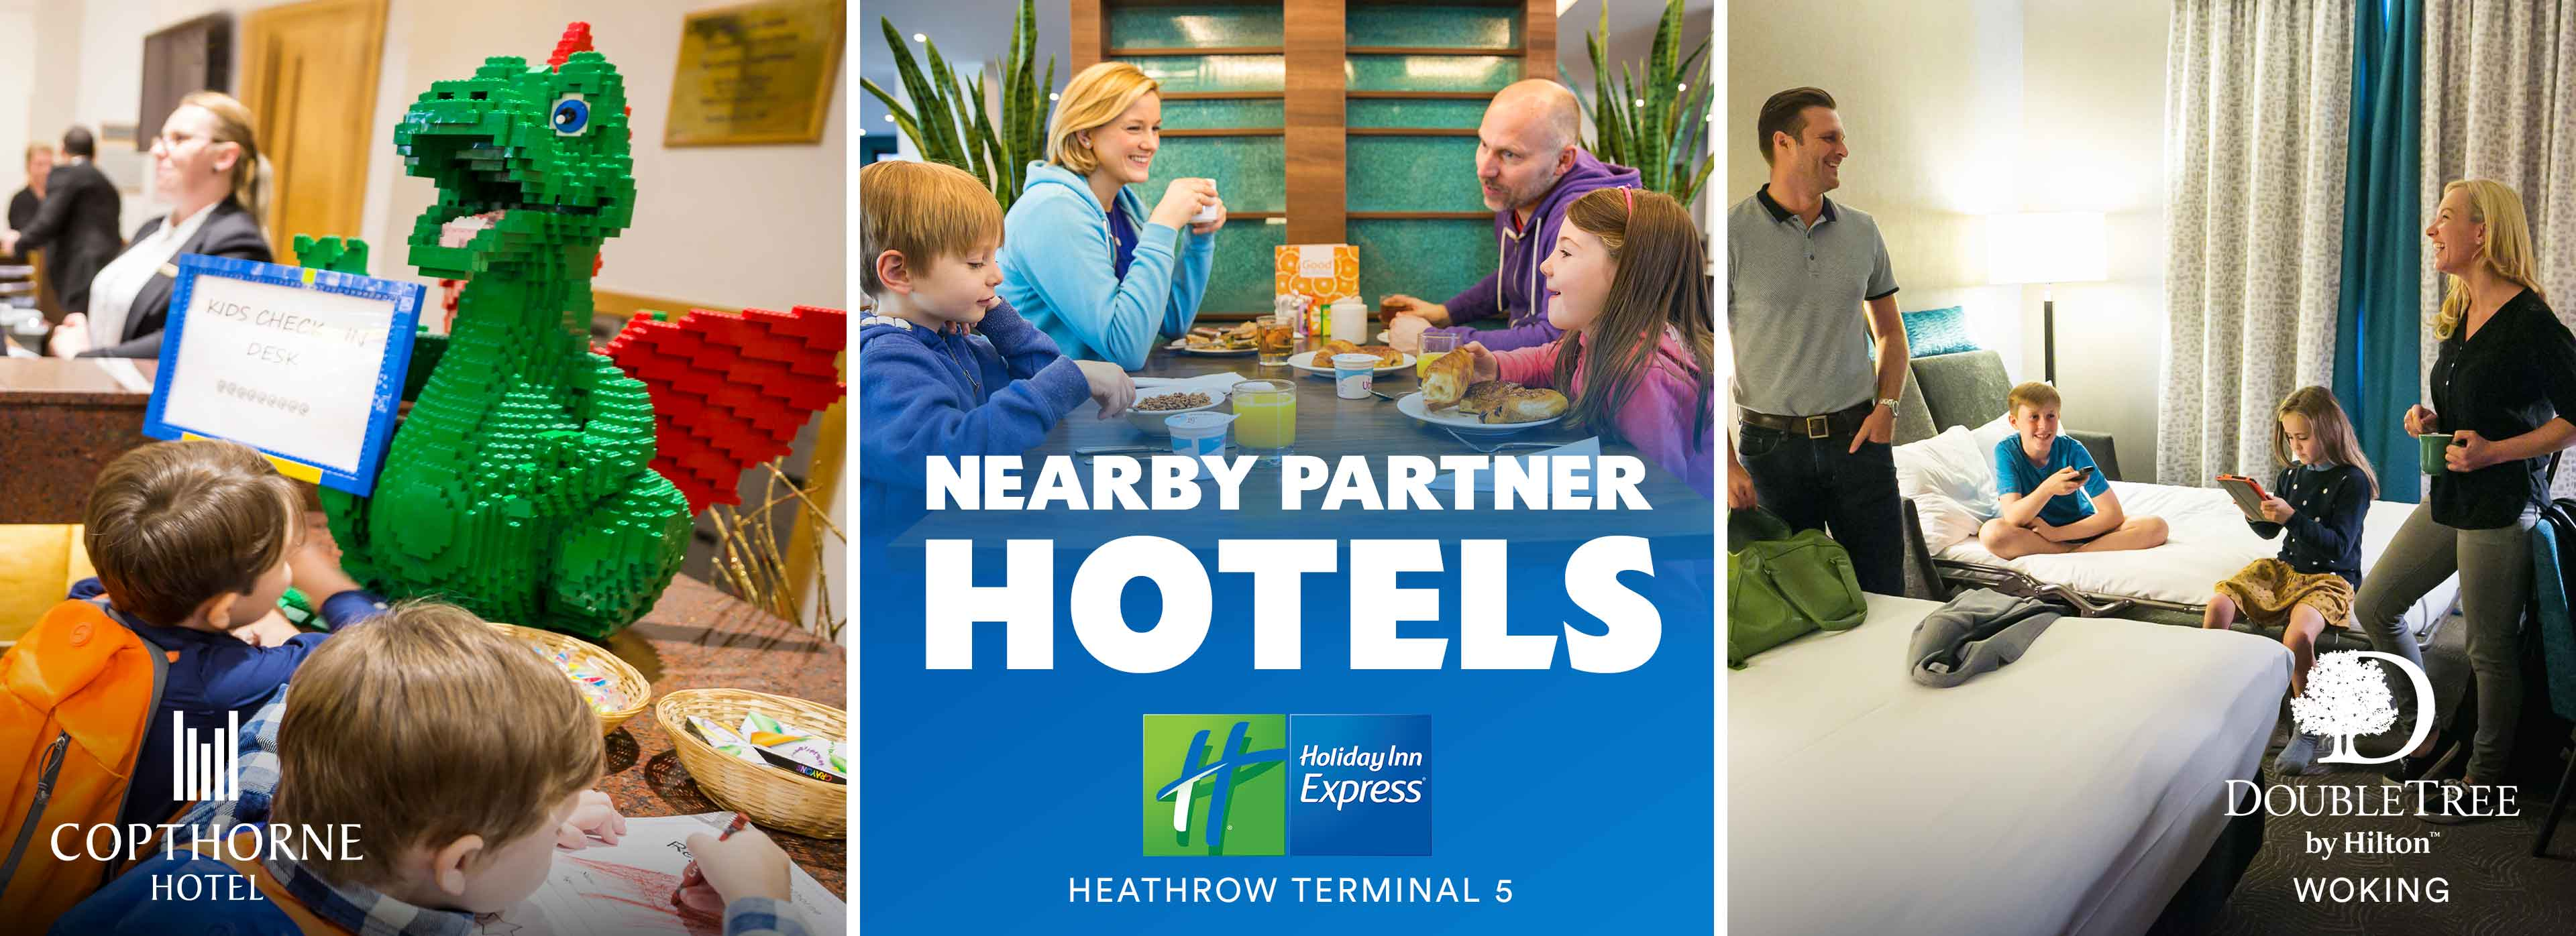 Nearby Partner Hotels